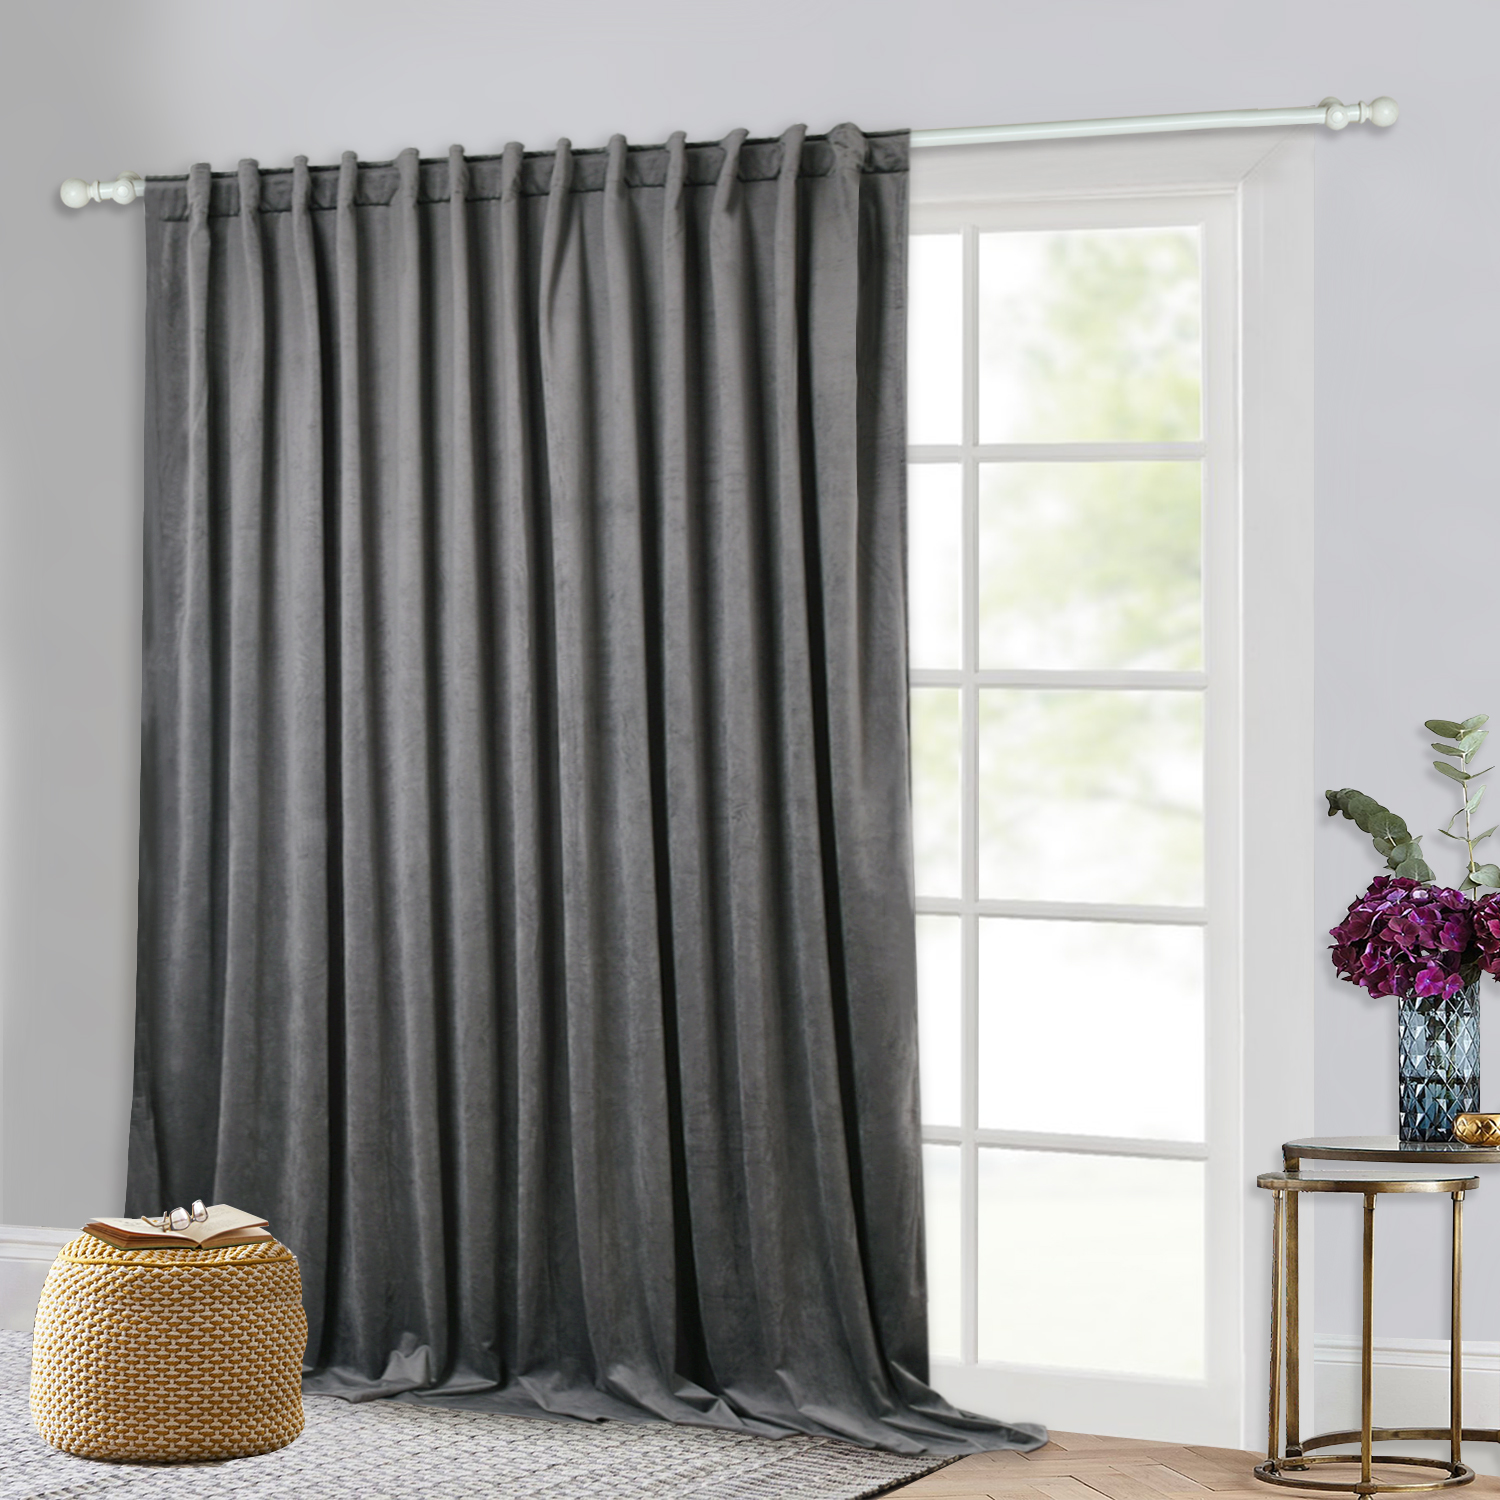 Velvet Curtains D Thick Texture Blackout Window Treatments Set Extra Wide 100 Inches Luxury Home Decor Soundproof Privacy Screen With